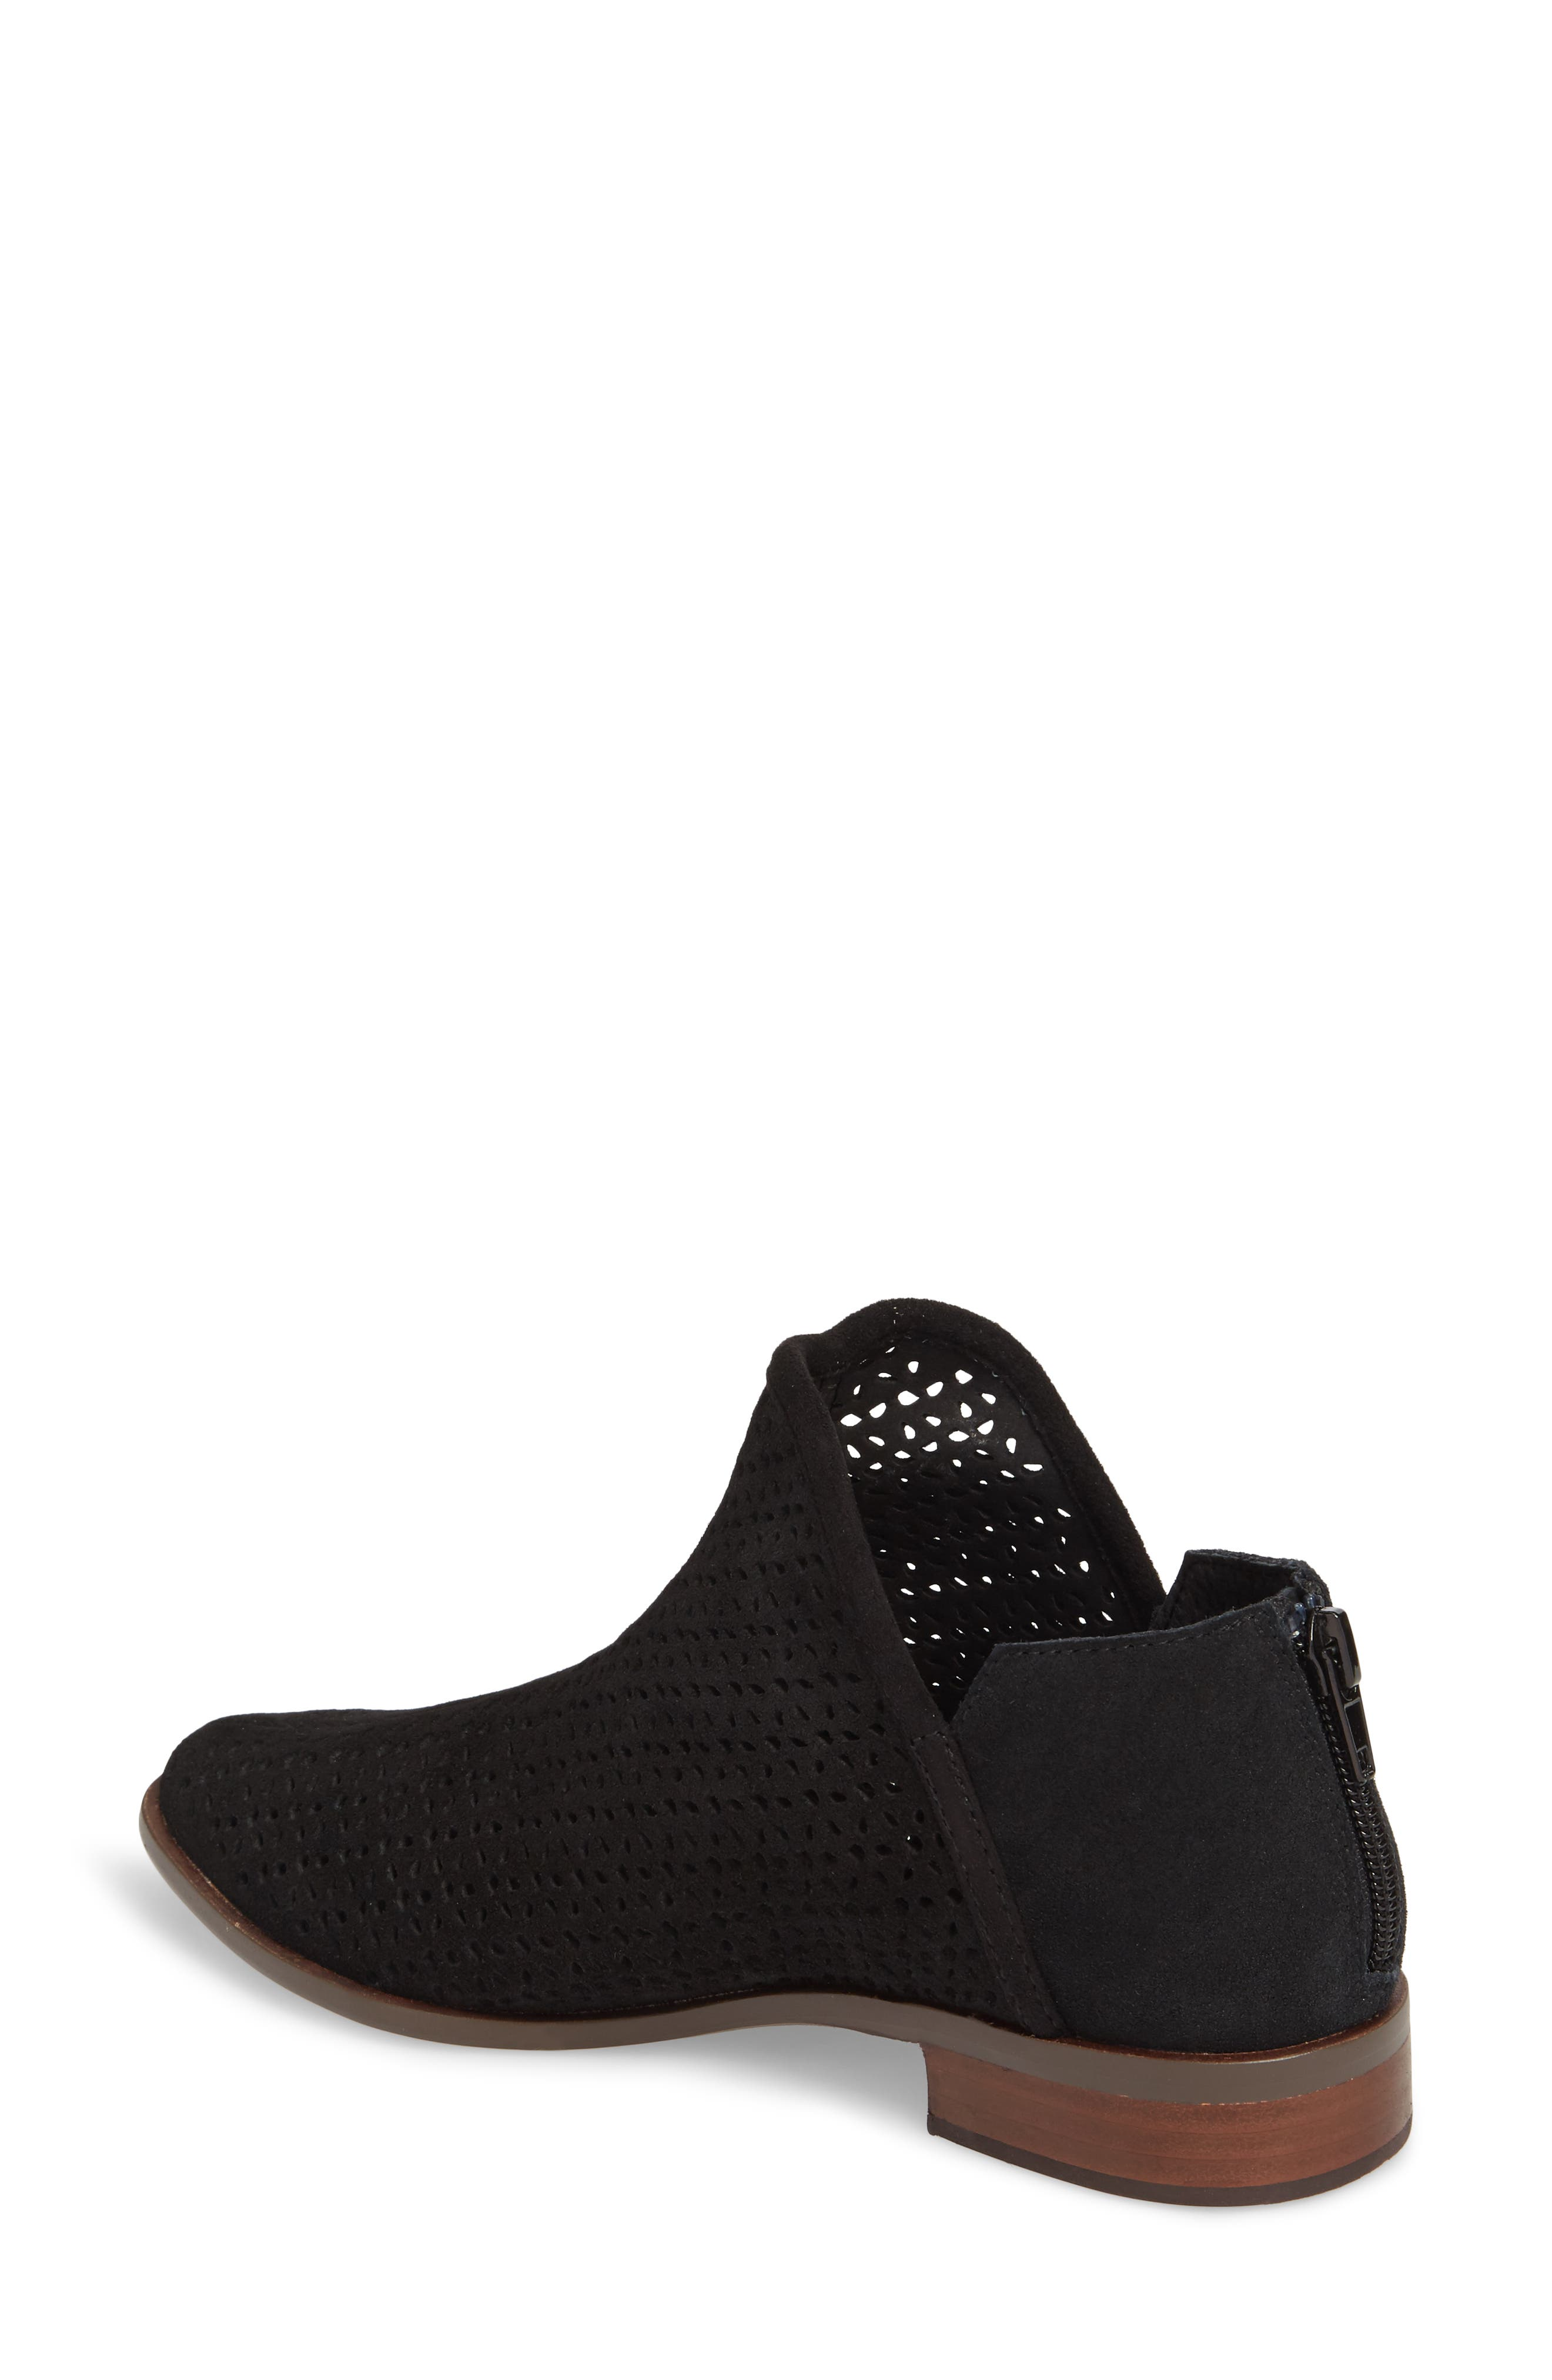 Alley Perforated Bootie,                             Alternate thumbnail 2, color,                             Black